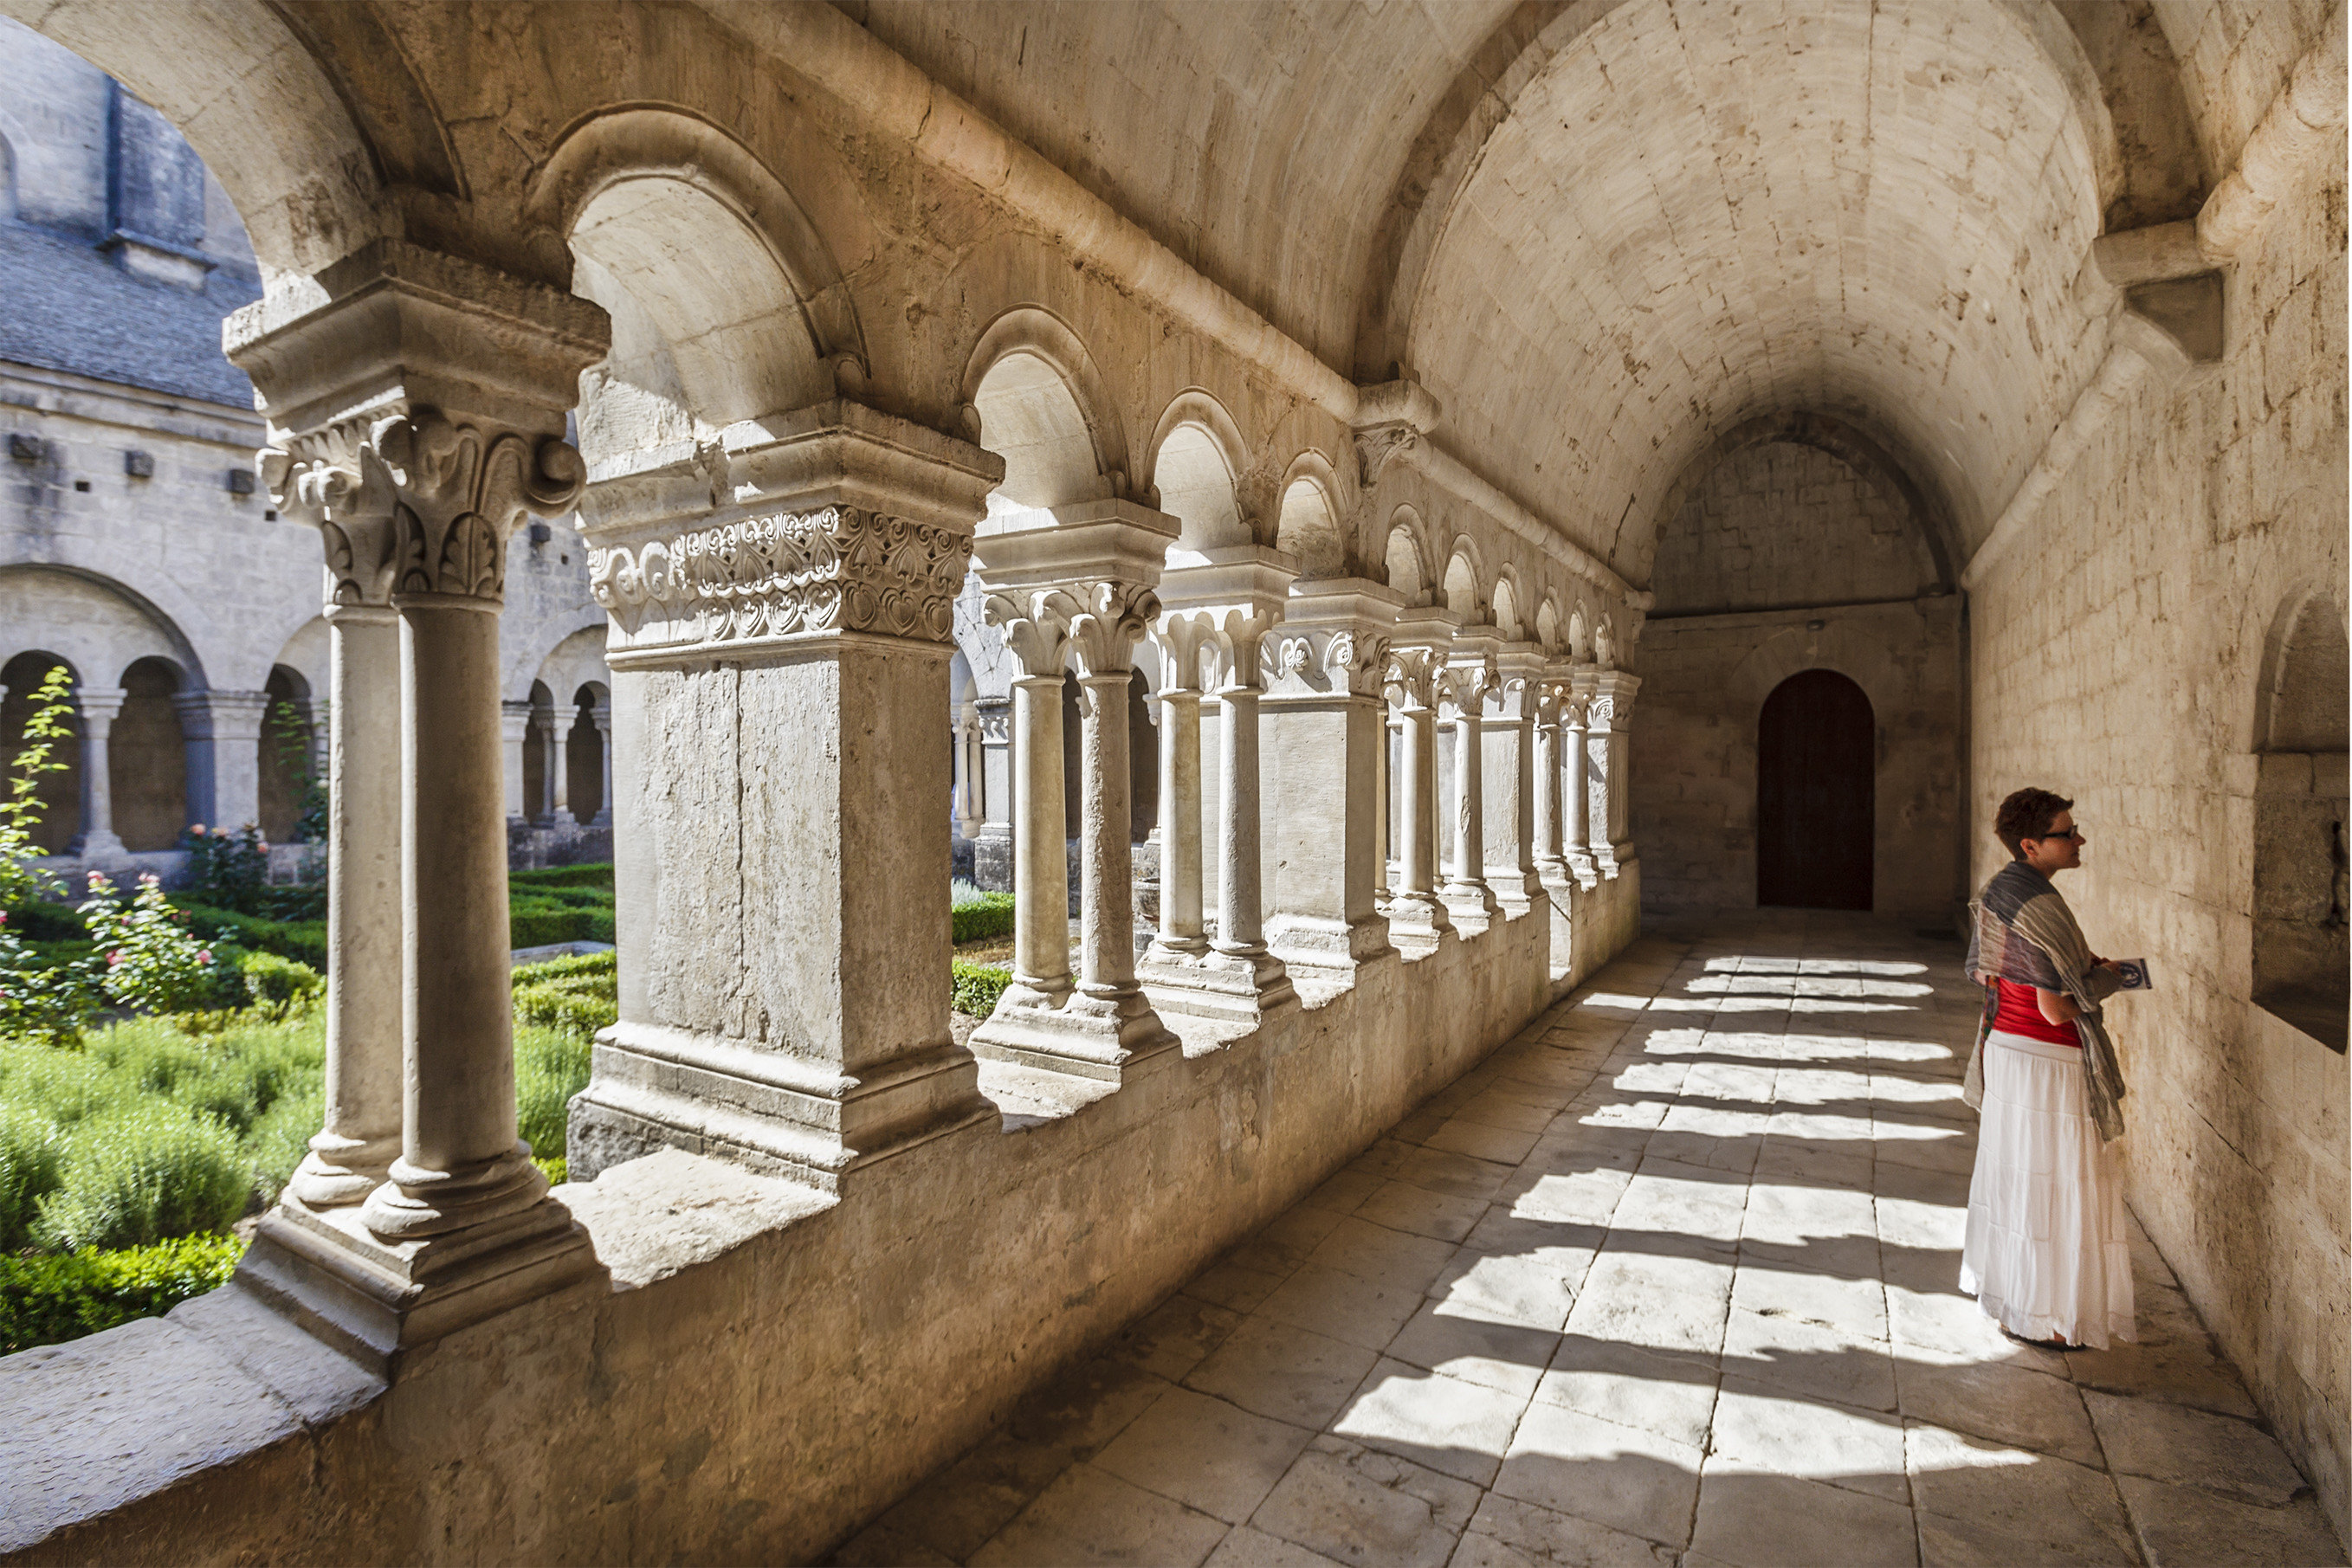 Trip Ideas building Architecture ancient history court monastery arch aisle temple place of worship palace estate arcade history stone Courtyard walkway colonnade